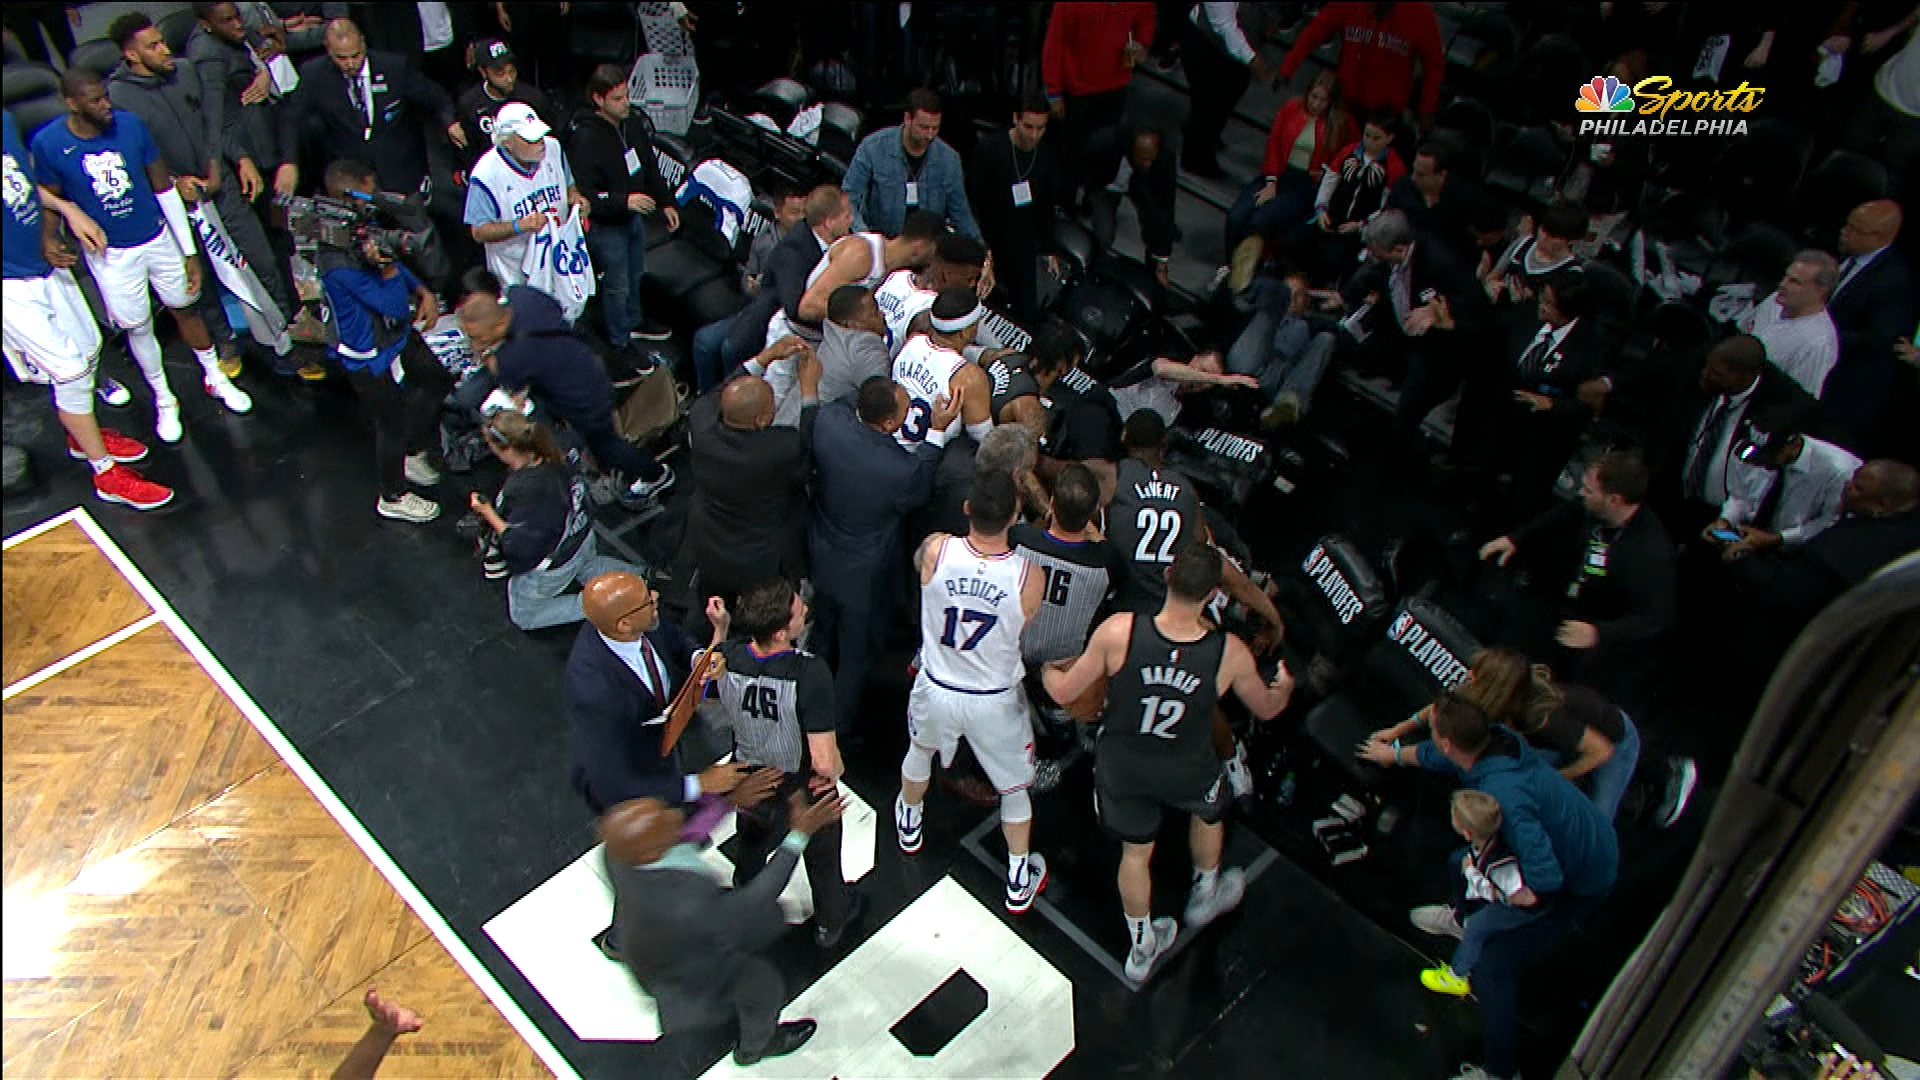 Jimmy Butler and Jared Dudley ejected after melee